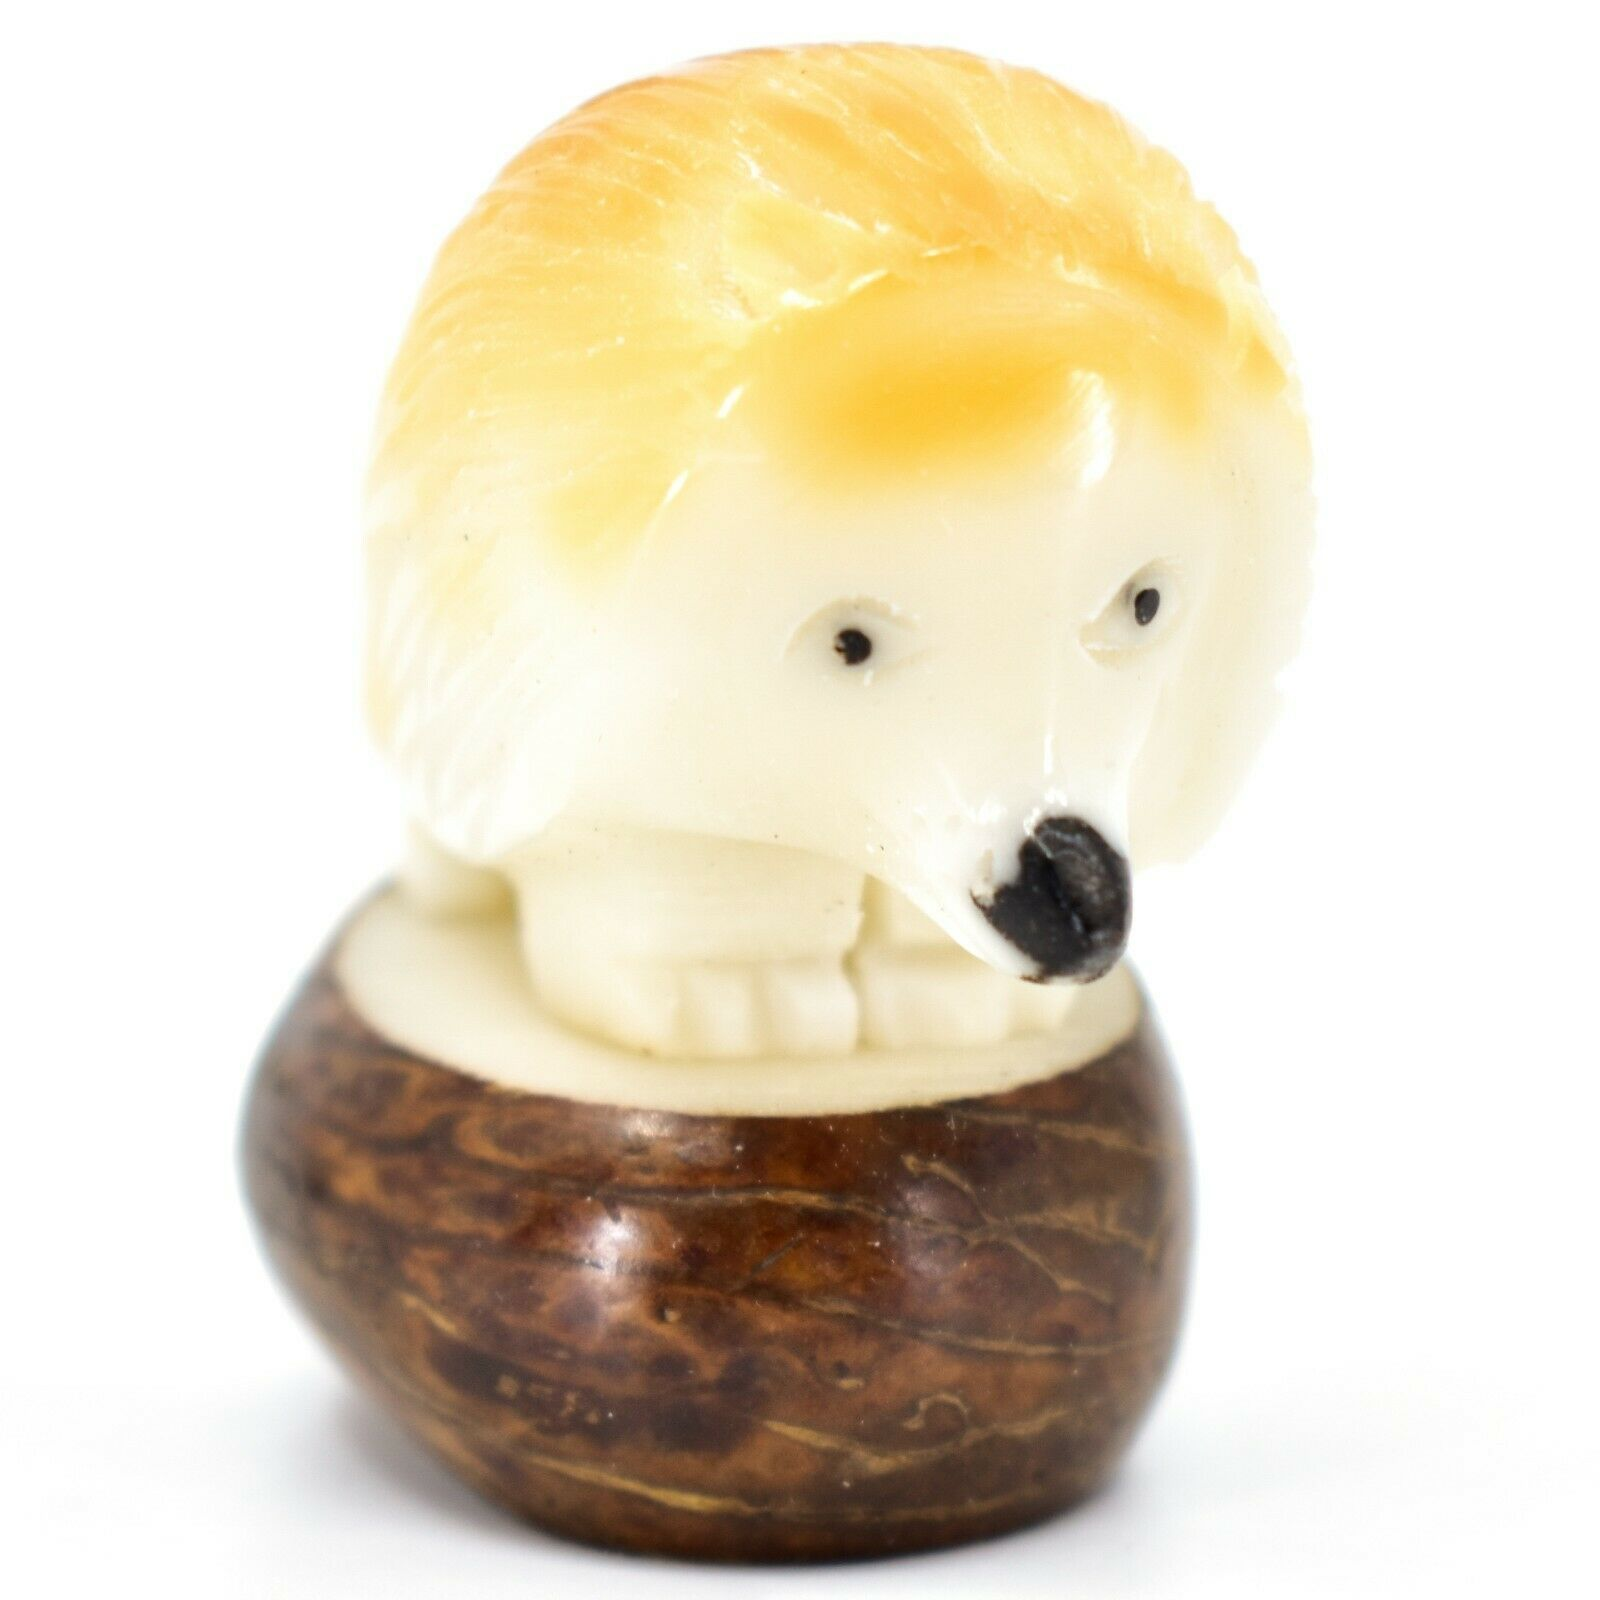 Hand Carved Tagua Nut Carving Hedgehog Figurine Made in Ecuador